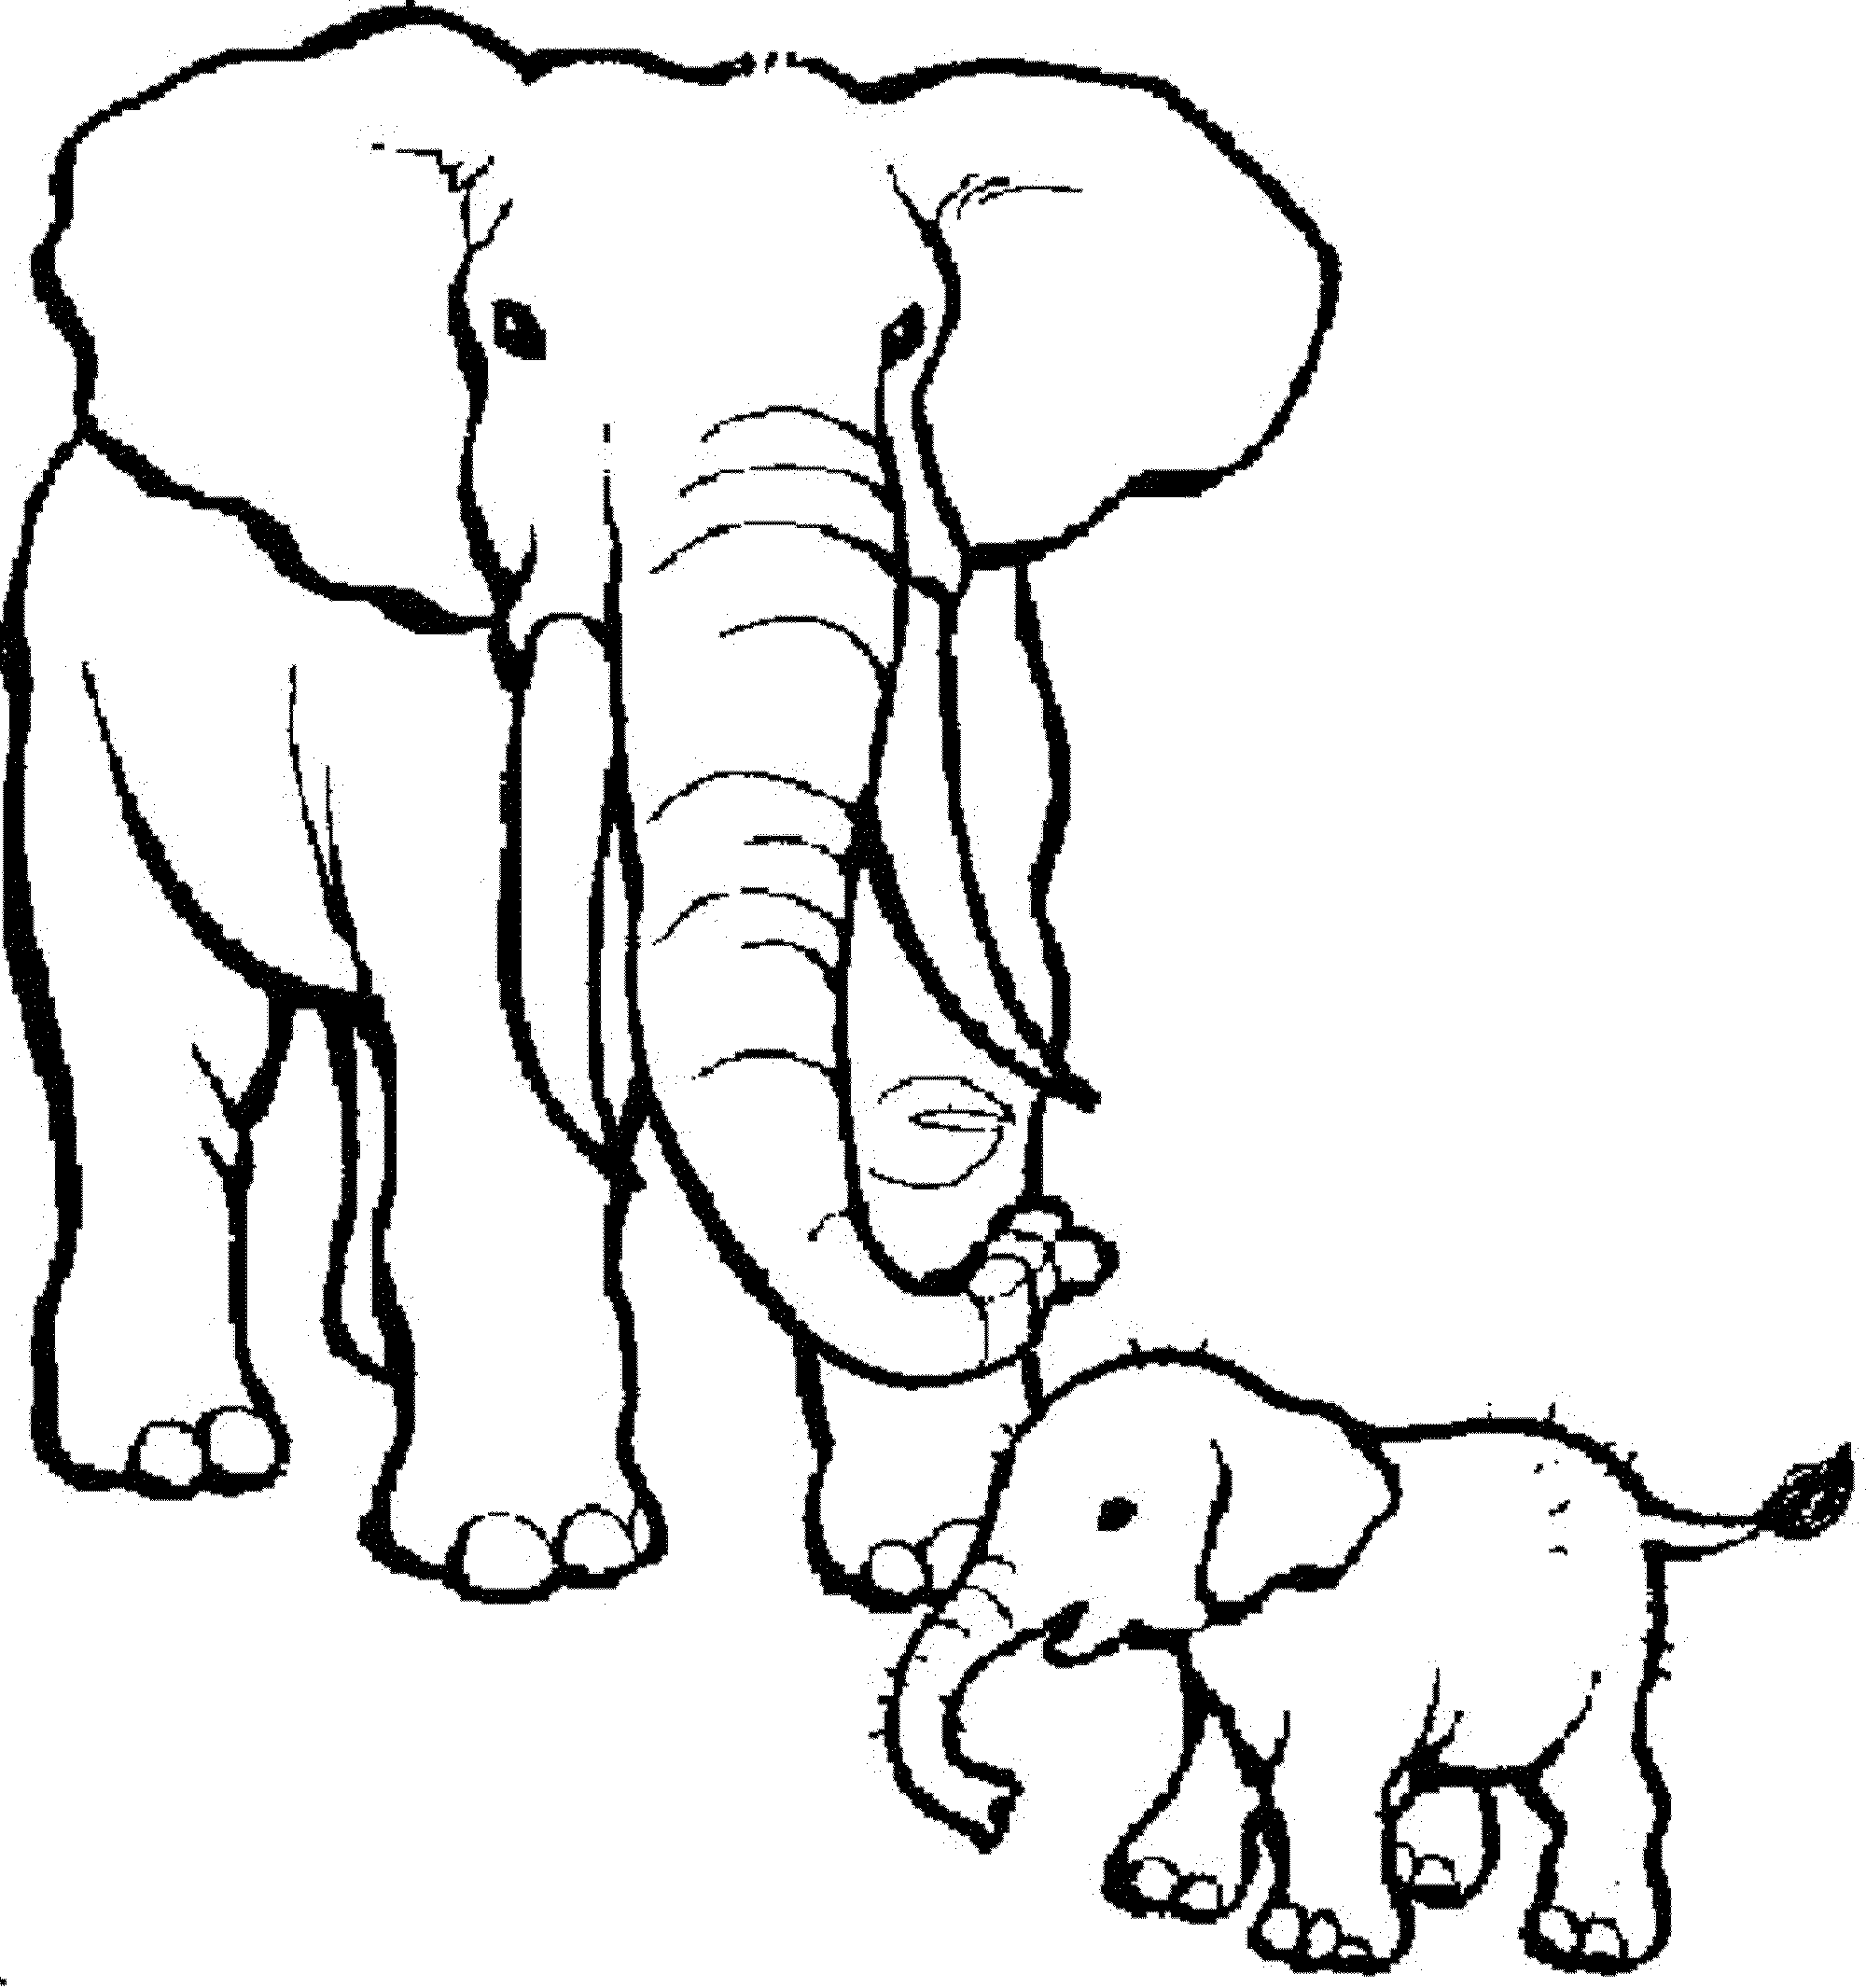 elephants coloring pages print download teaching kids through elephant coloring coloring elephants pages